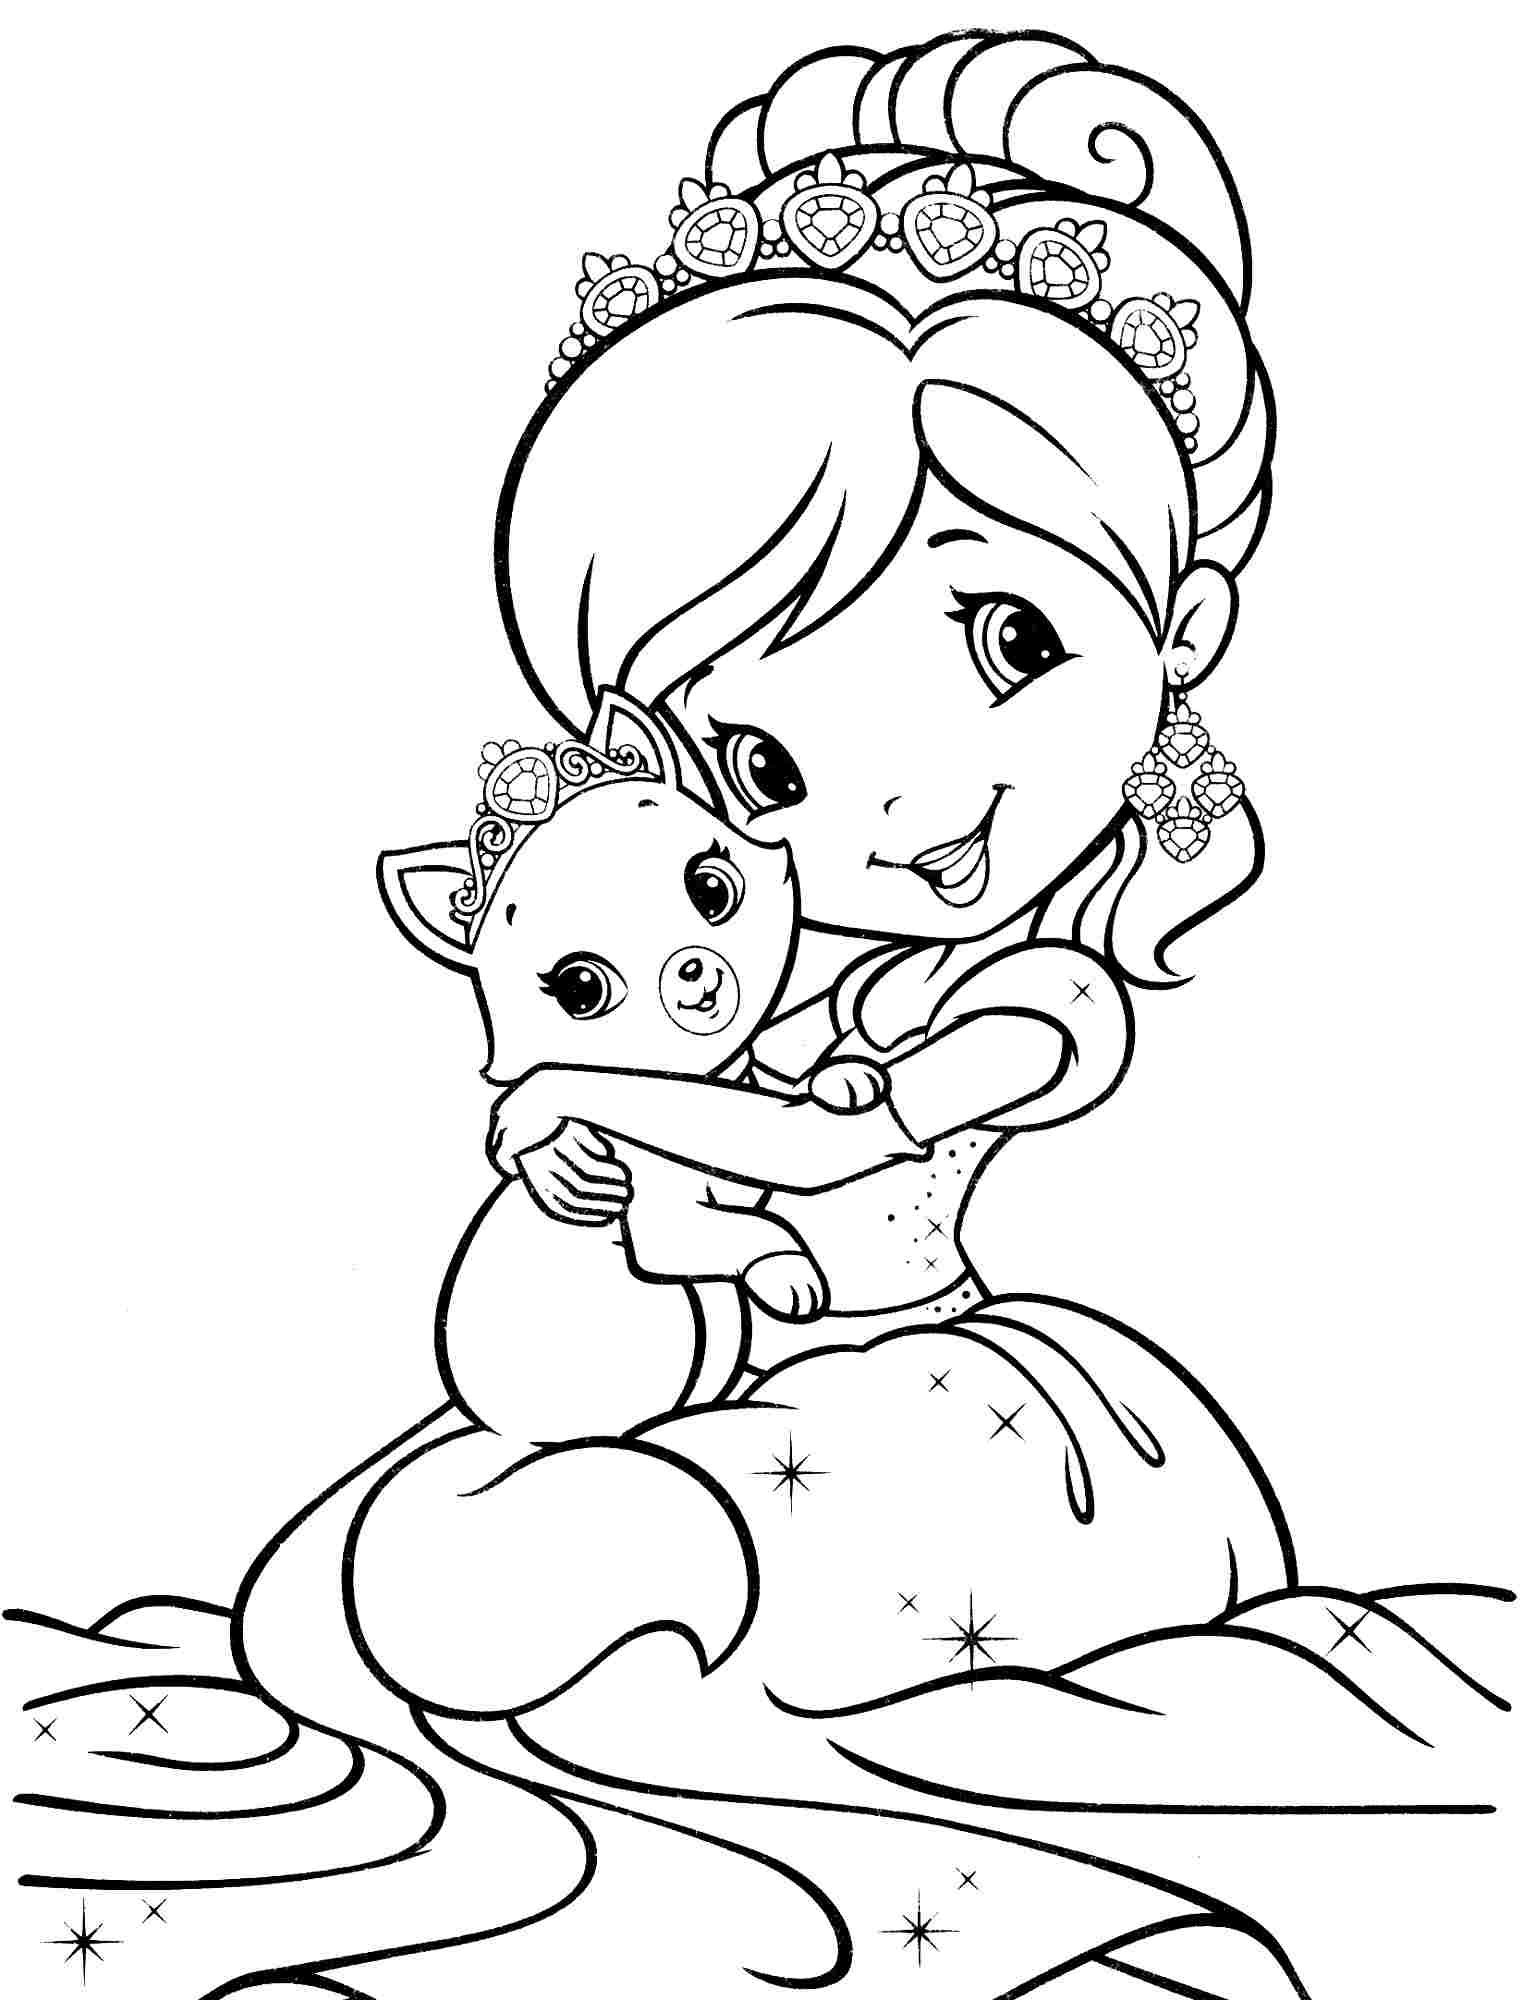 60 Cartoon Strawberry Shortcake Coloring Pages Printable 1523